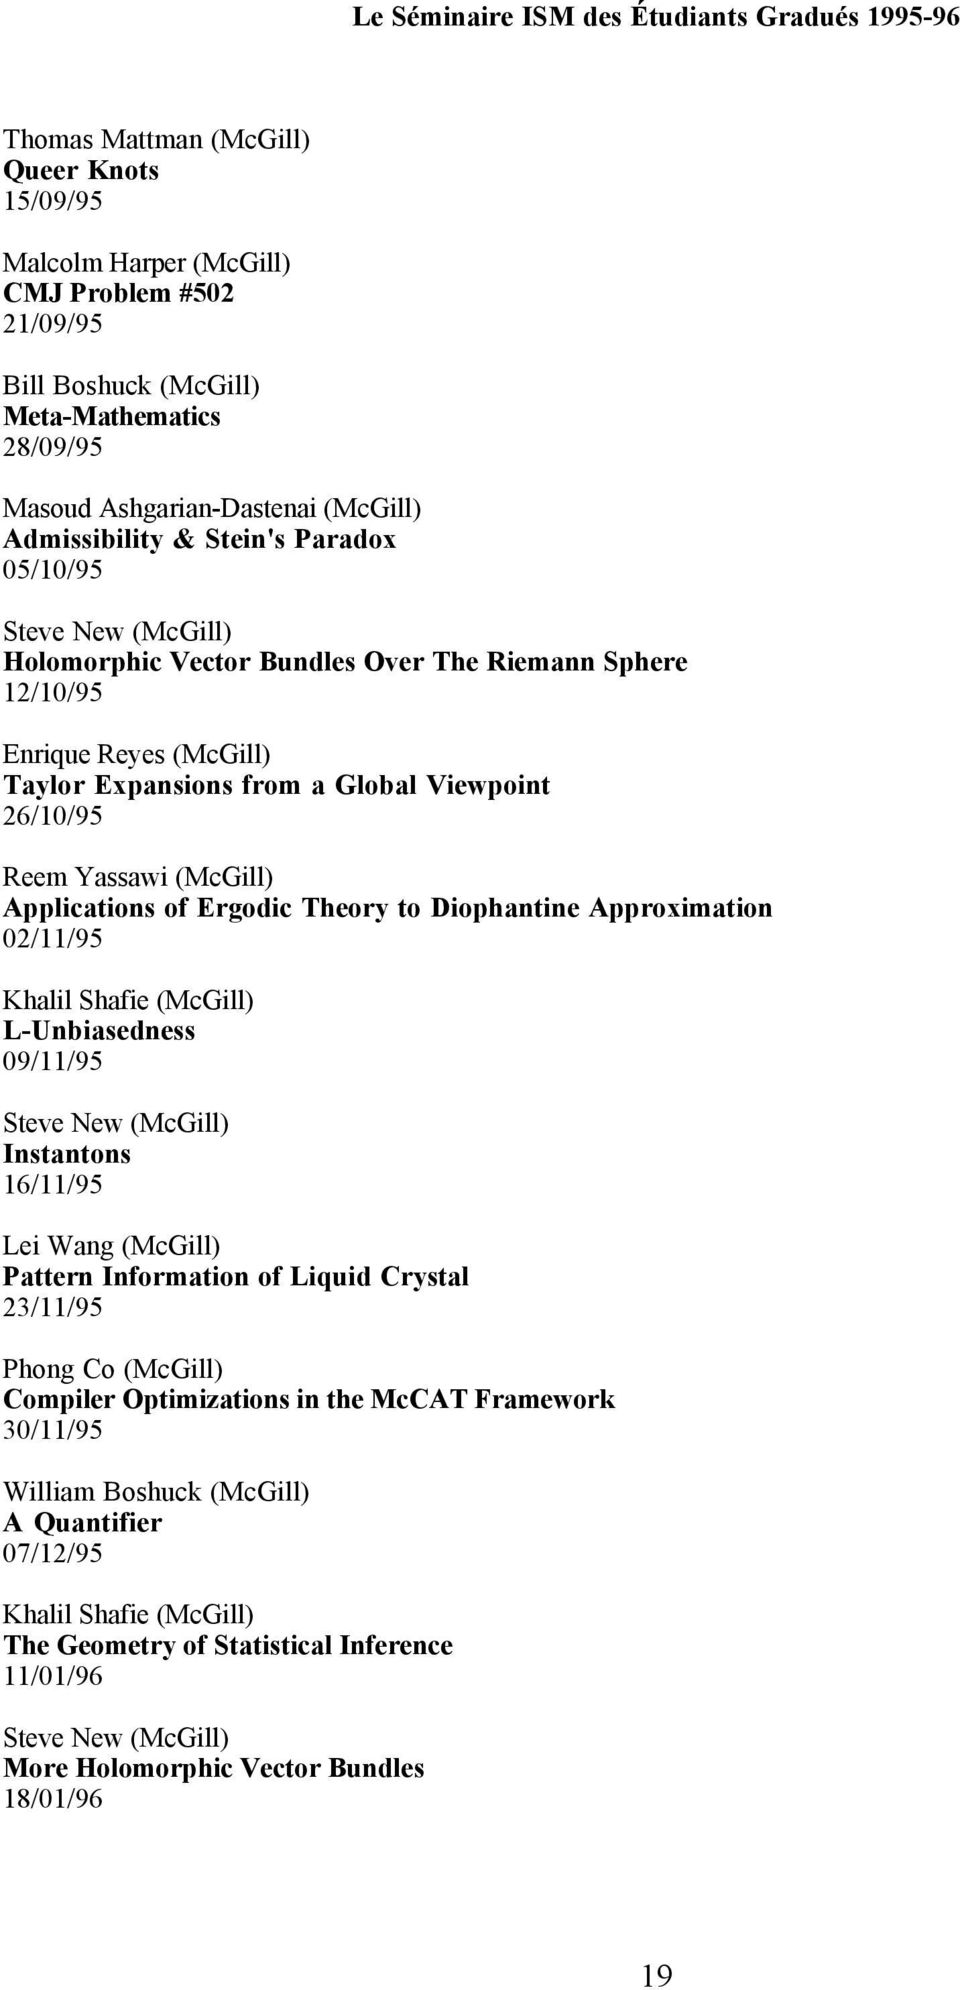 Global Viewpoint 26/10/95 Reem Yassawi (McGill) Applications of Ergodic Theory to Diophantine Approximation 02/11/95 Khalil Shafie (McGill) L-Unbiasedness 09/11/95 Steve New (McGill) Instantons